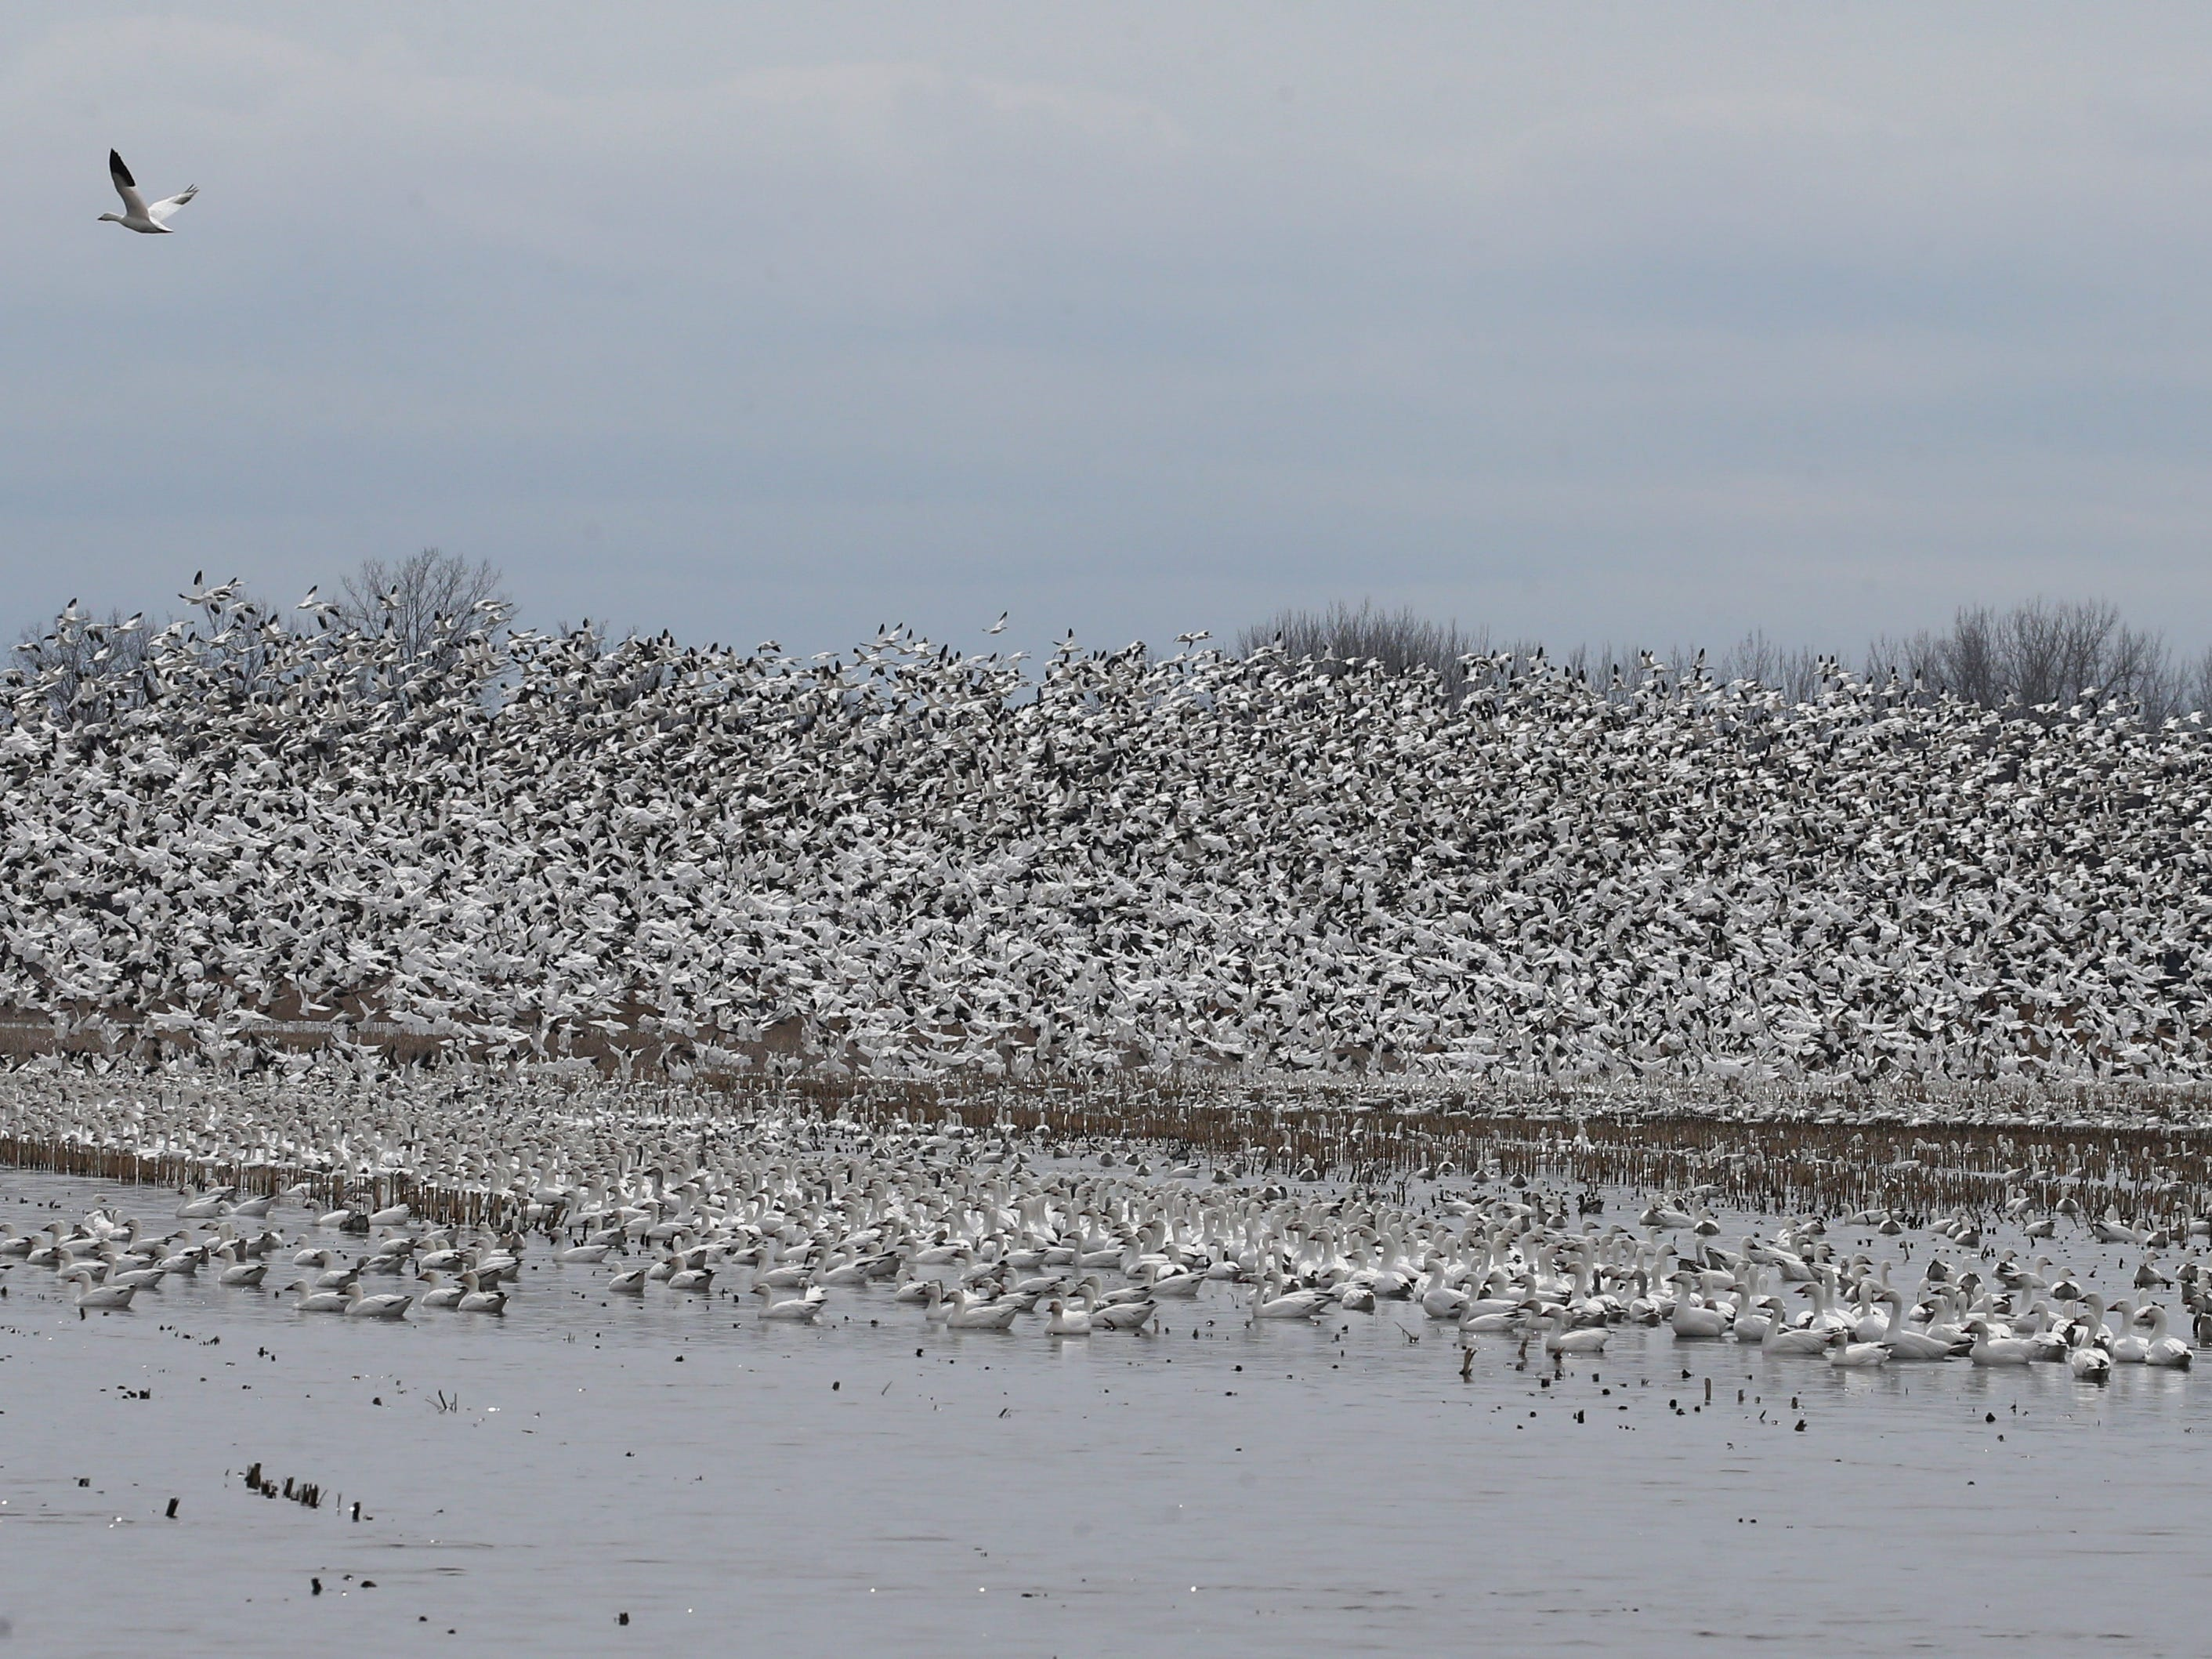 Snow Geese by the tens of thousands lift off then settle back down on a stretch of partially flooded farm land known as the 31 muck during the annual spring migration at the Montezuma Wetlands Complex along Route 31 outside of Savannah Thursday, March 21, 2019.